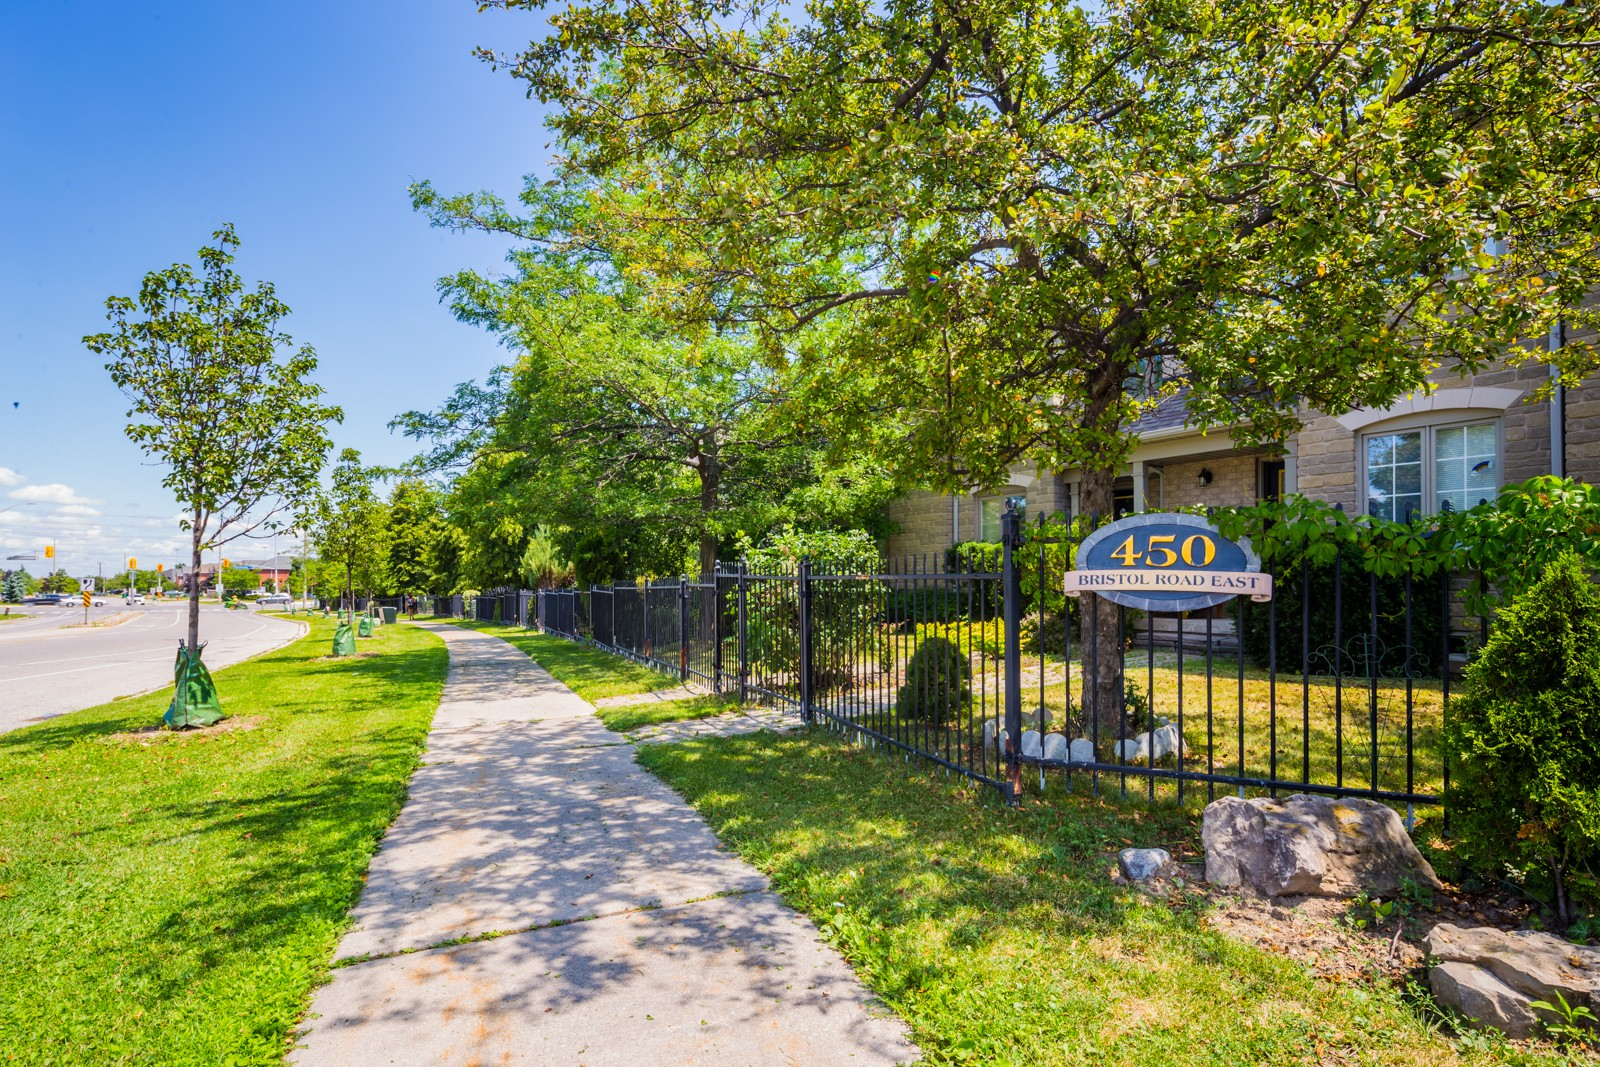 450 Bristol Road East Townhouses at 450 Bristol Rd E, Mississauga 0